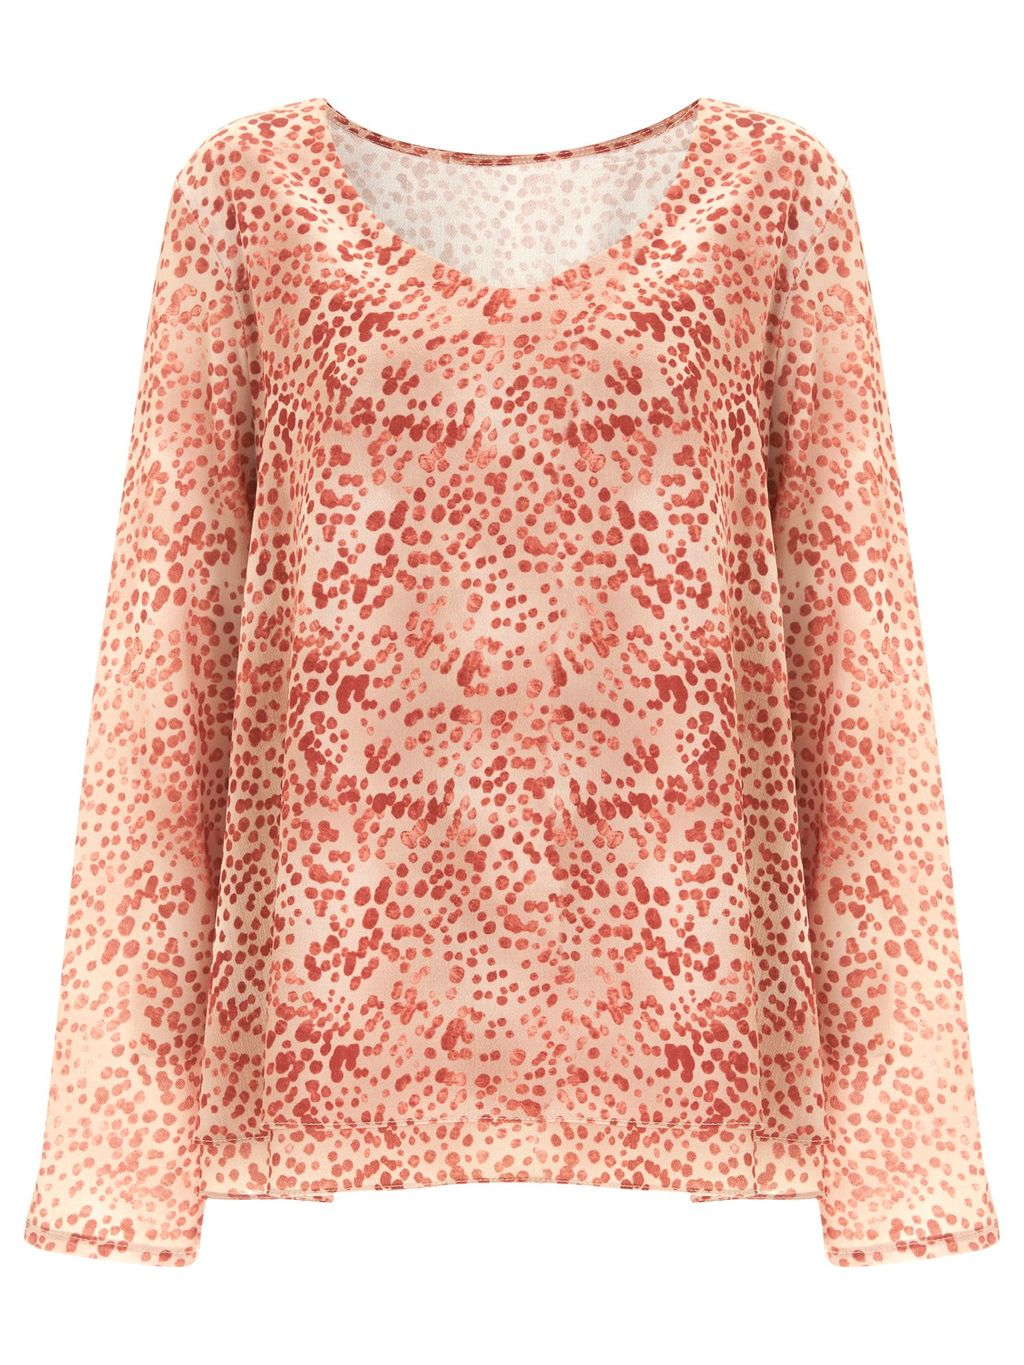 Shoreditch Printed Top, Orange - neckline: v-neck; predominant colour: bright orange; occasions: casual, creative work; length: standard; style: top; fibres: polyester/polyamide - stretch; fit: body skimming; sleeve length: long sleeve; sleeve style: standard; texture group: sheer fabrics/chiffon/organza etc.; pattern type: fabric; pattern: patterned/print; pattern size: big & busy (top); season: s/s 2016; wardrobe: highlight